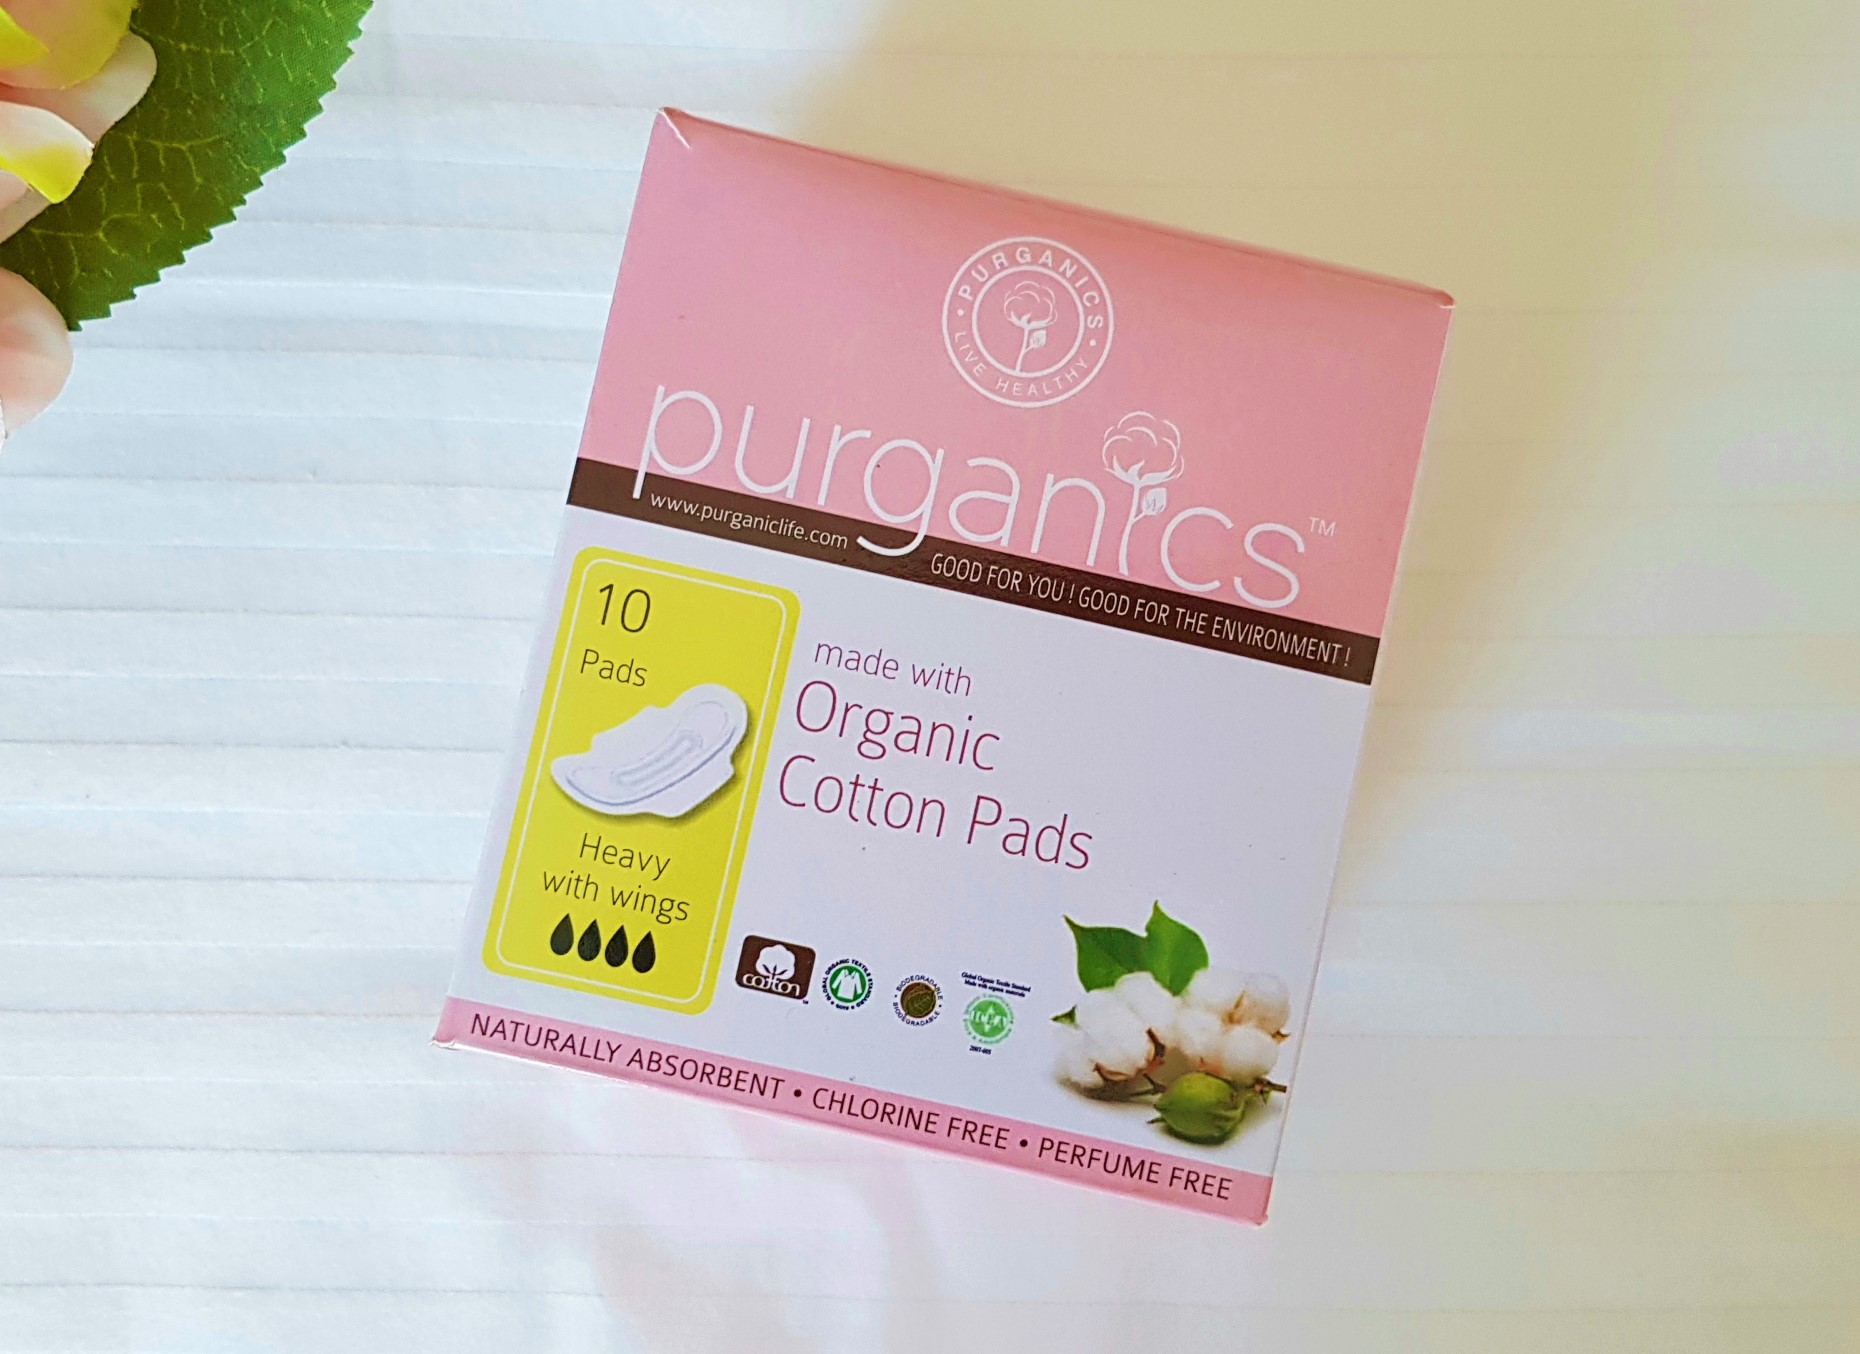 Sustainable Menstruation - Purganics Organic Cotton Pads - eco-friendly menstrual pads safe for women - healthy periods - Not Quite